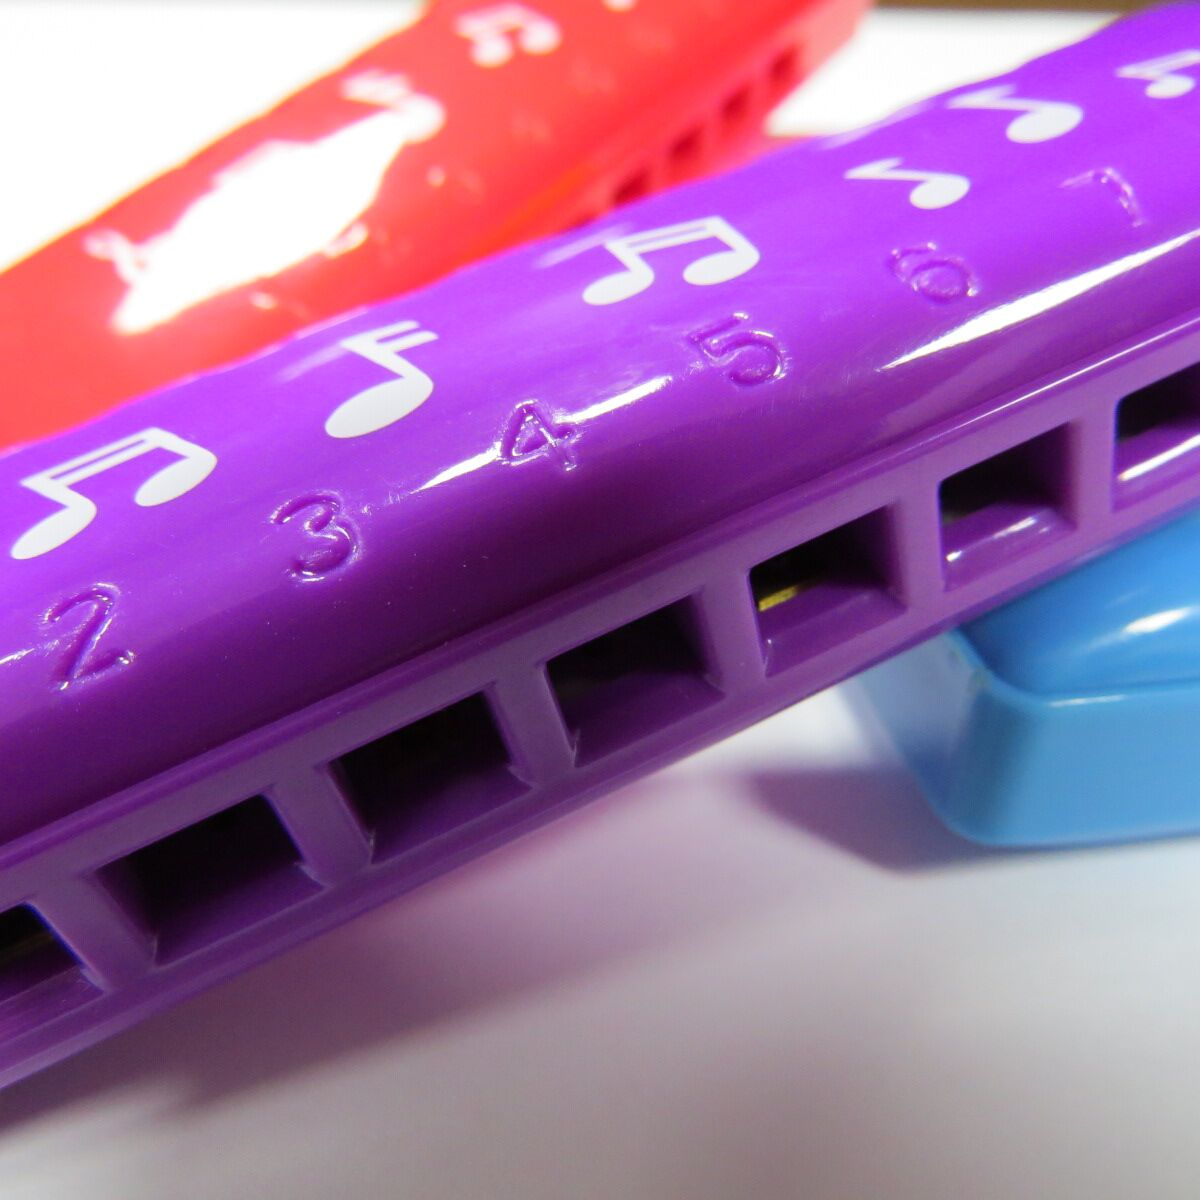 DF8A 8 holes colourful promotion harmonica toy  plastic harmonica